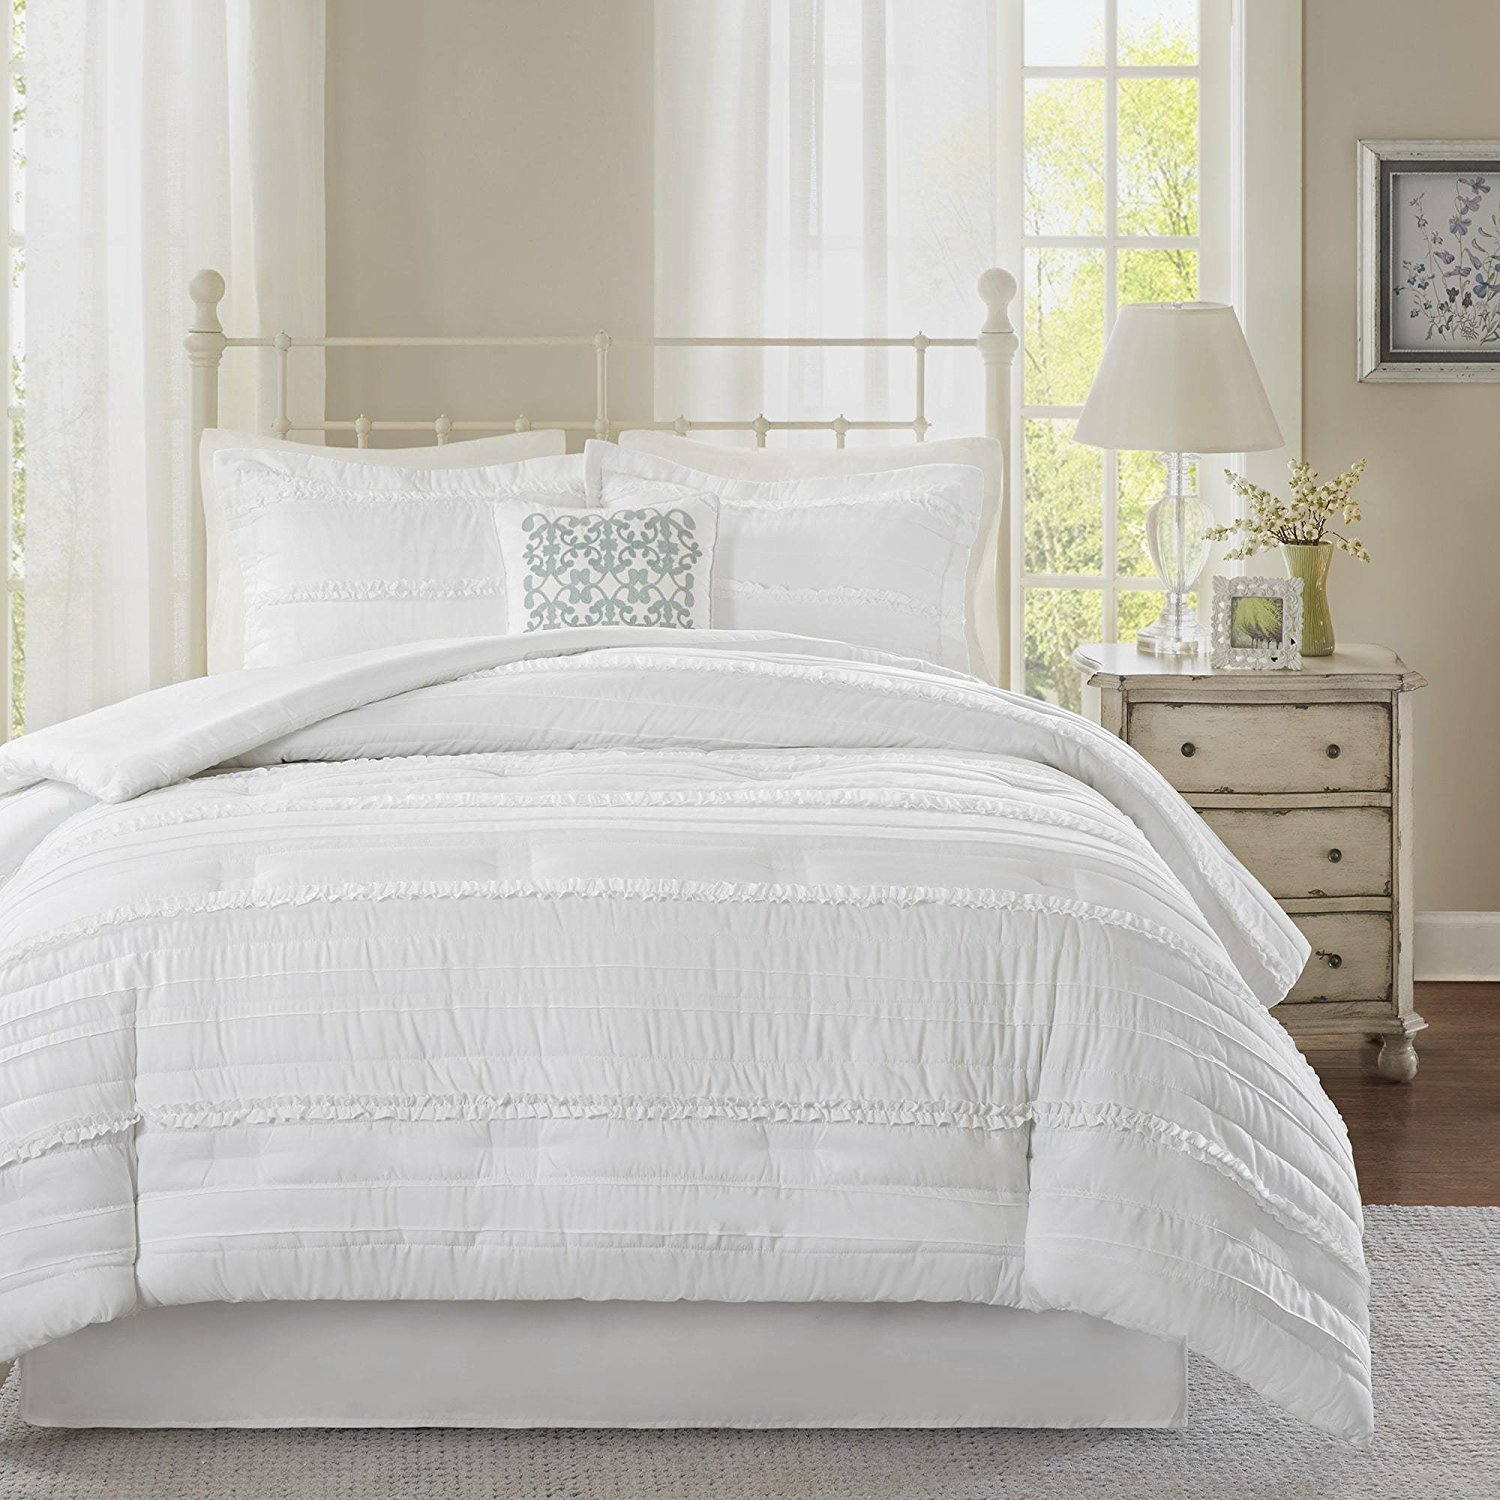 5pc White Solid Ruffled Stripes Pattern Comforter Queen Set, Bedding, Stylisg ruched Horizonral Stripe Design, Classic French Country, Unisex, Boho Shabby Chic